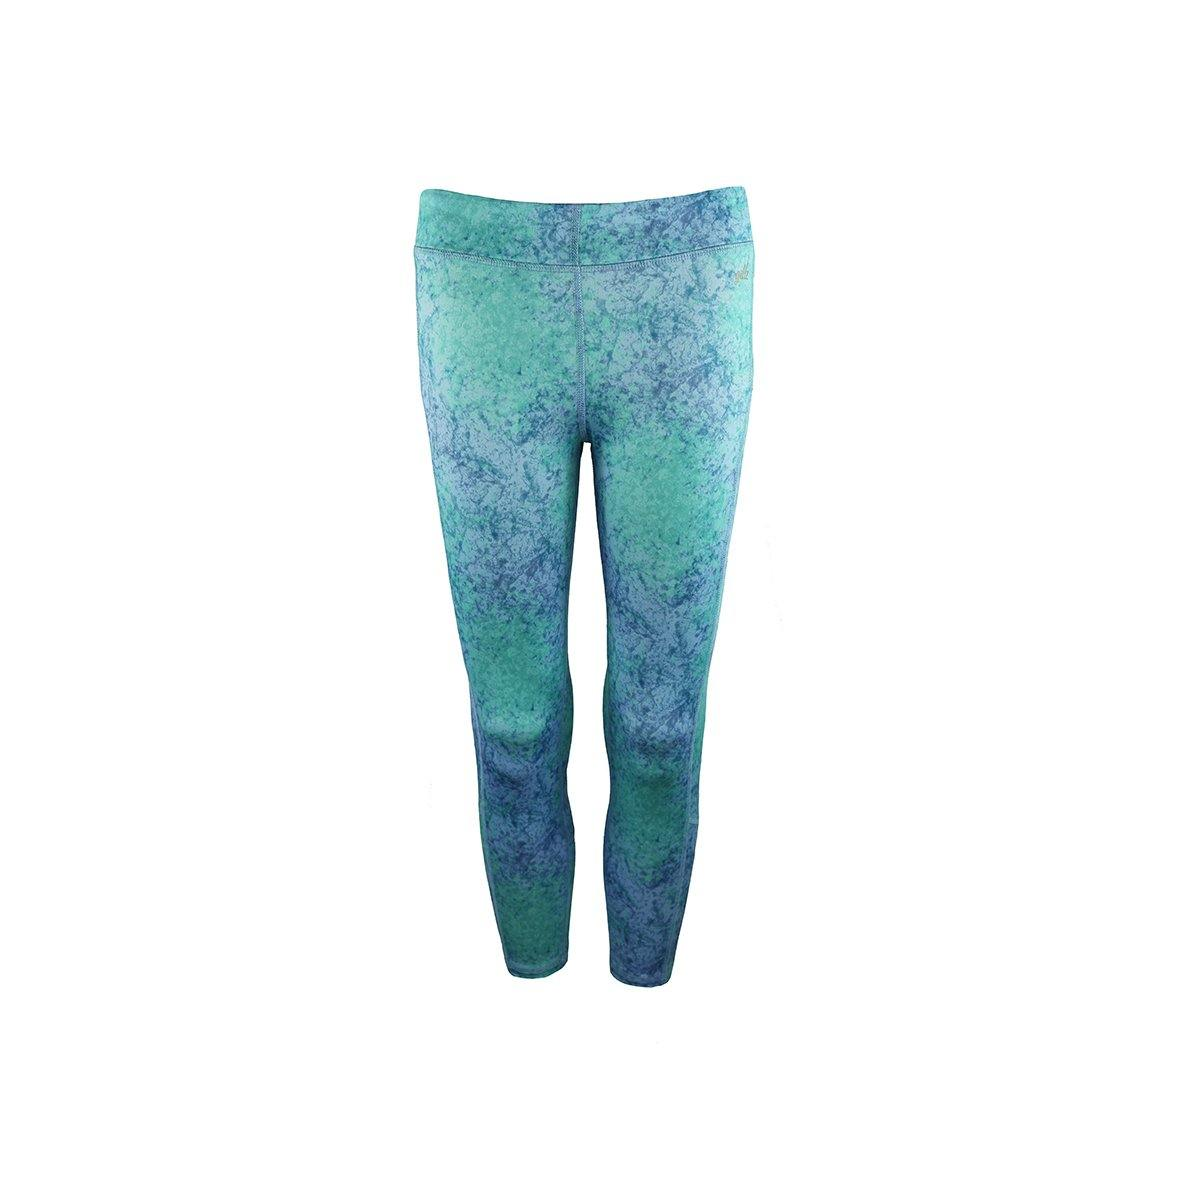 "Gillz Women's Capri legging ""All Over Print"" - Placid Blue"